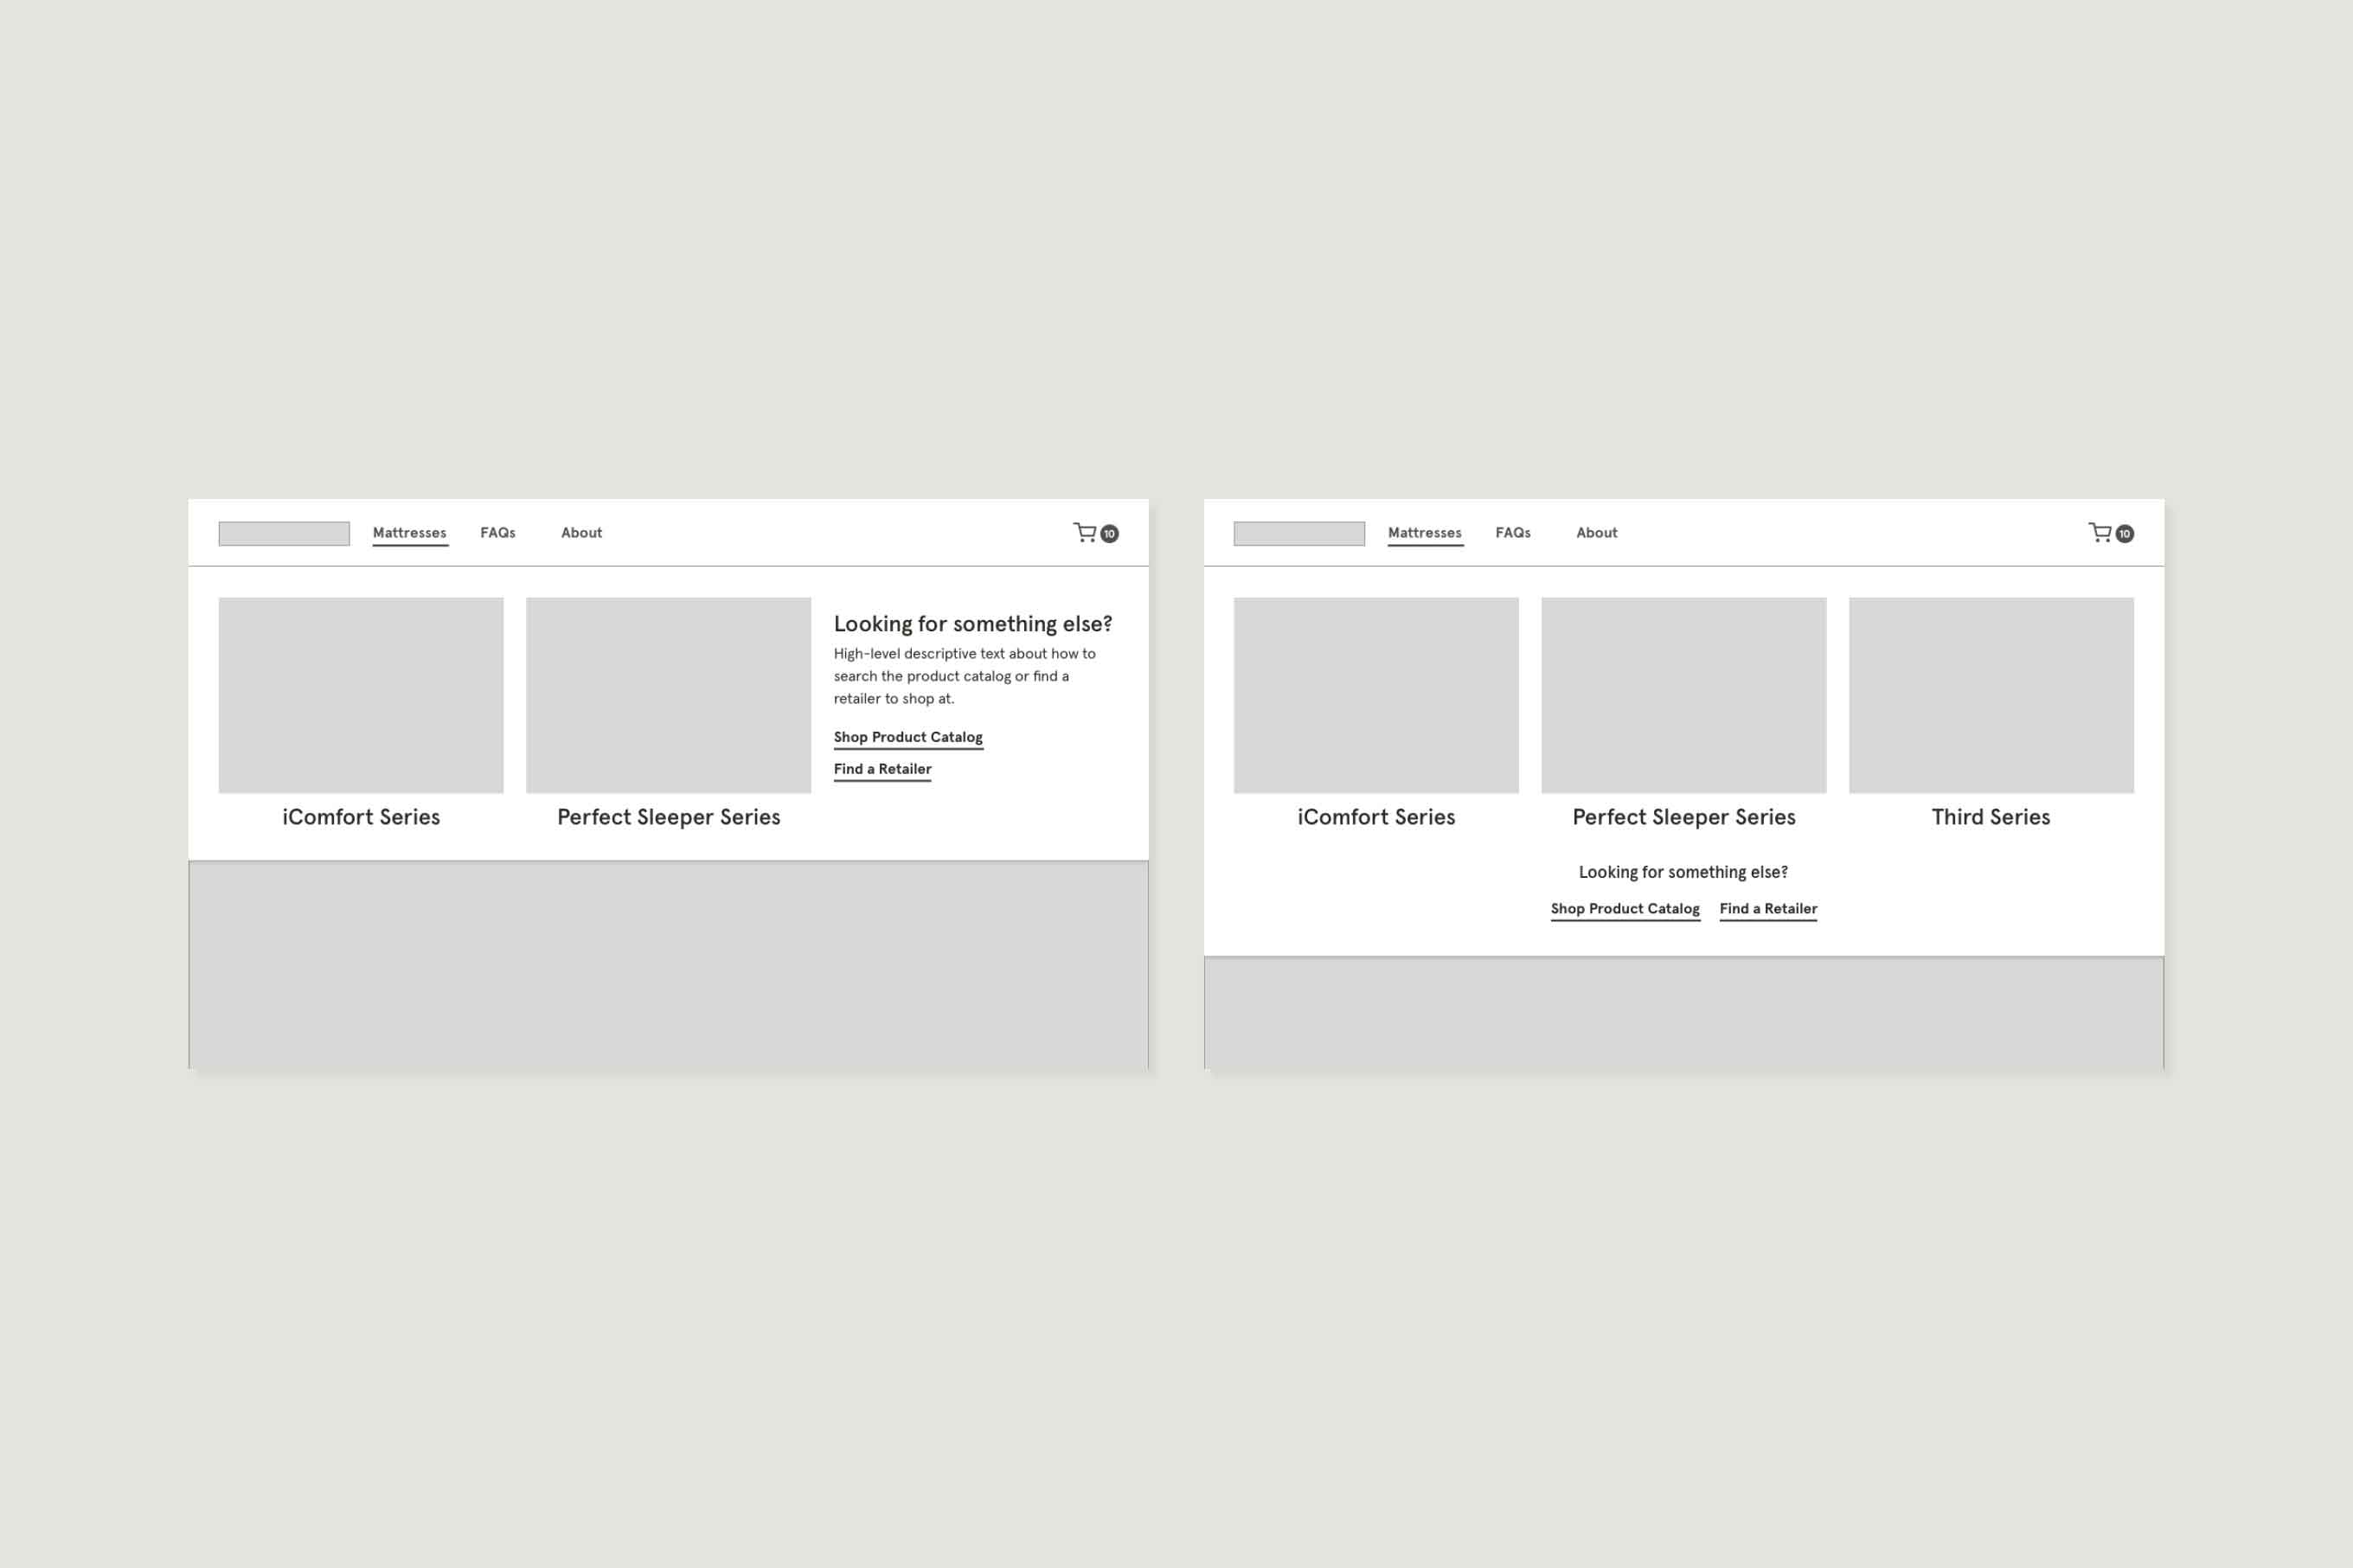 Two desktop wireframes of the navigation menu showing potential future states. In the first, two of the columns have an image with a label below, and the third column has descriptive text with two text links. In the second, all columns have an image with a label below it. Below the three columns, there is a section with two text links.